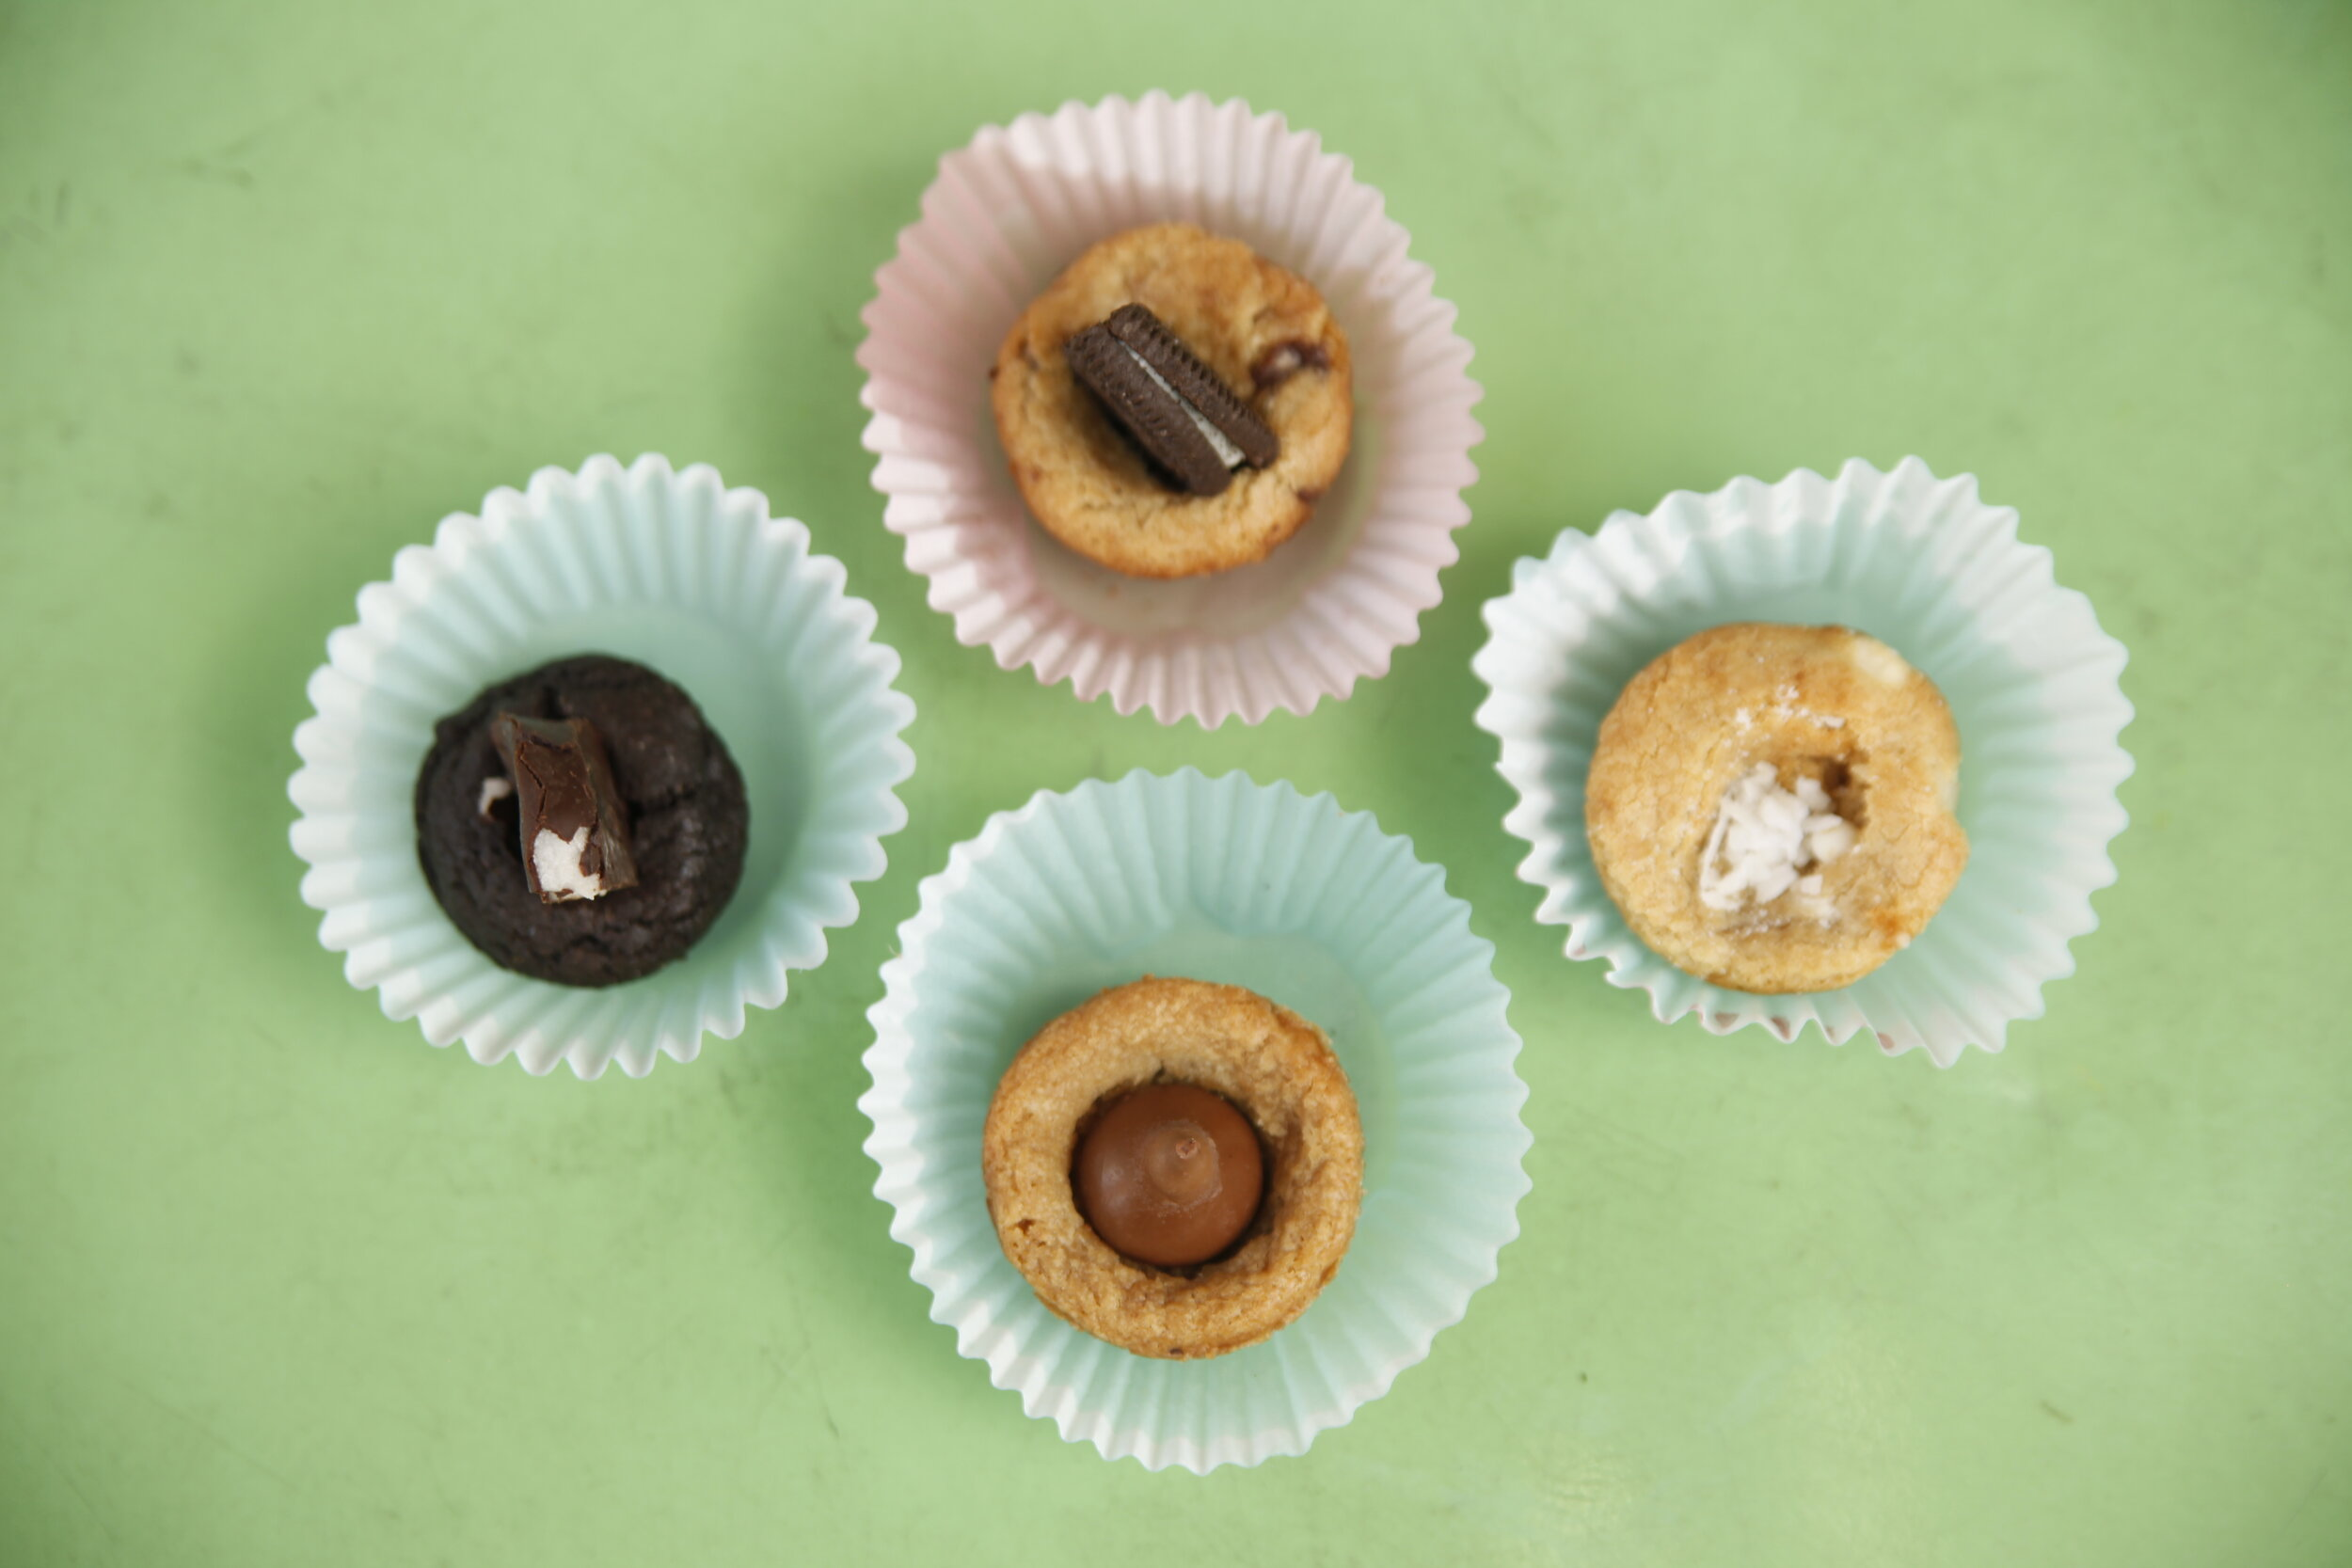 Treats - Wow your guests with fresh-baked treats!$1.50 each